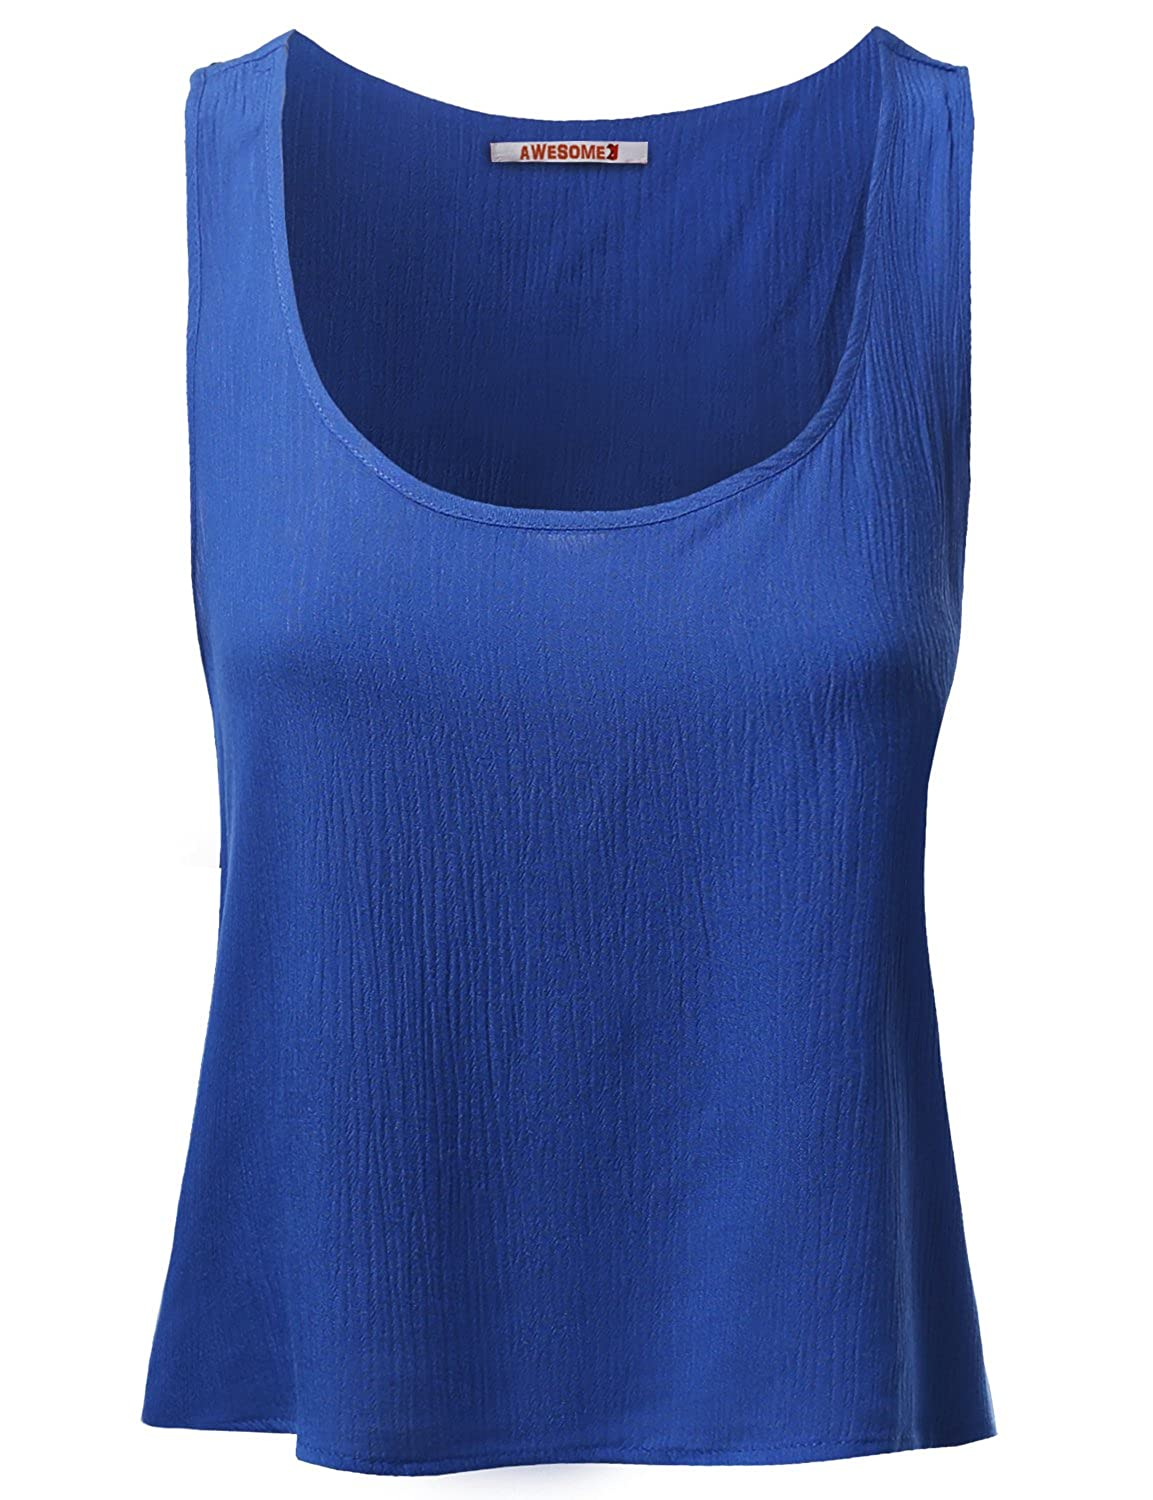 e54d003d04ede4 Awesome21 Women s Basic Gauze Sleeveless Tank Crop Tops at Amazon Women s  Clothing store